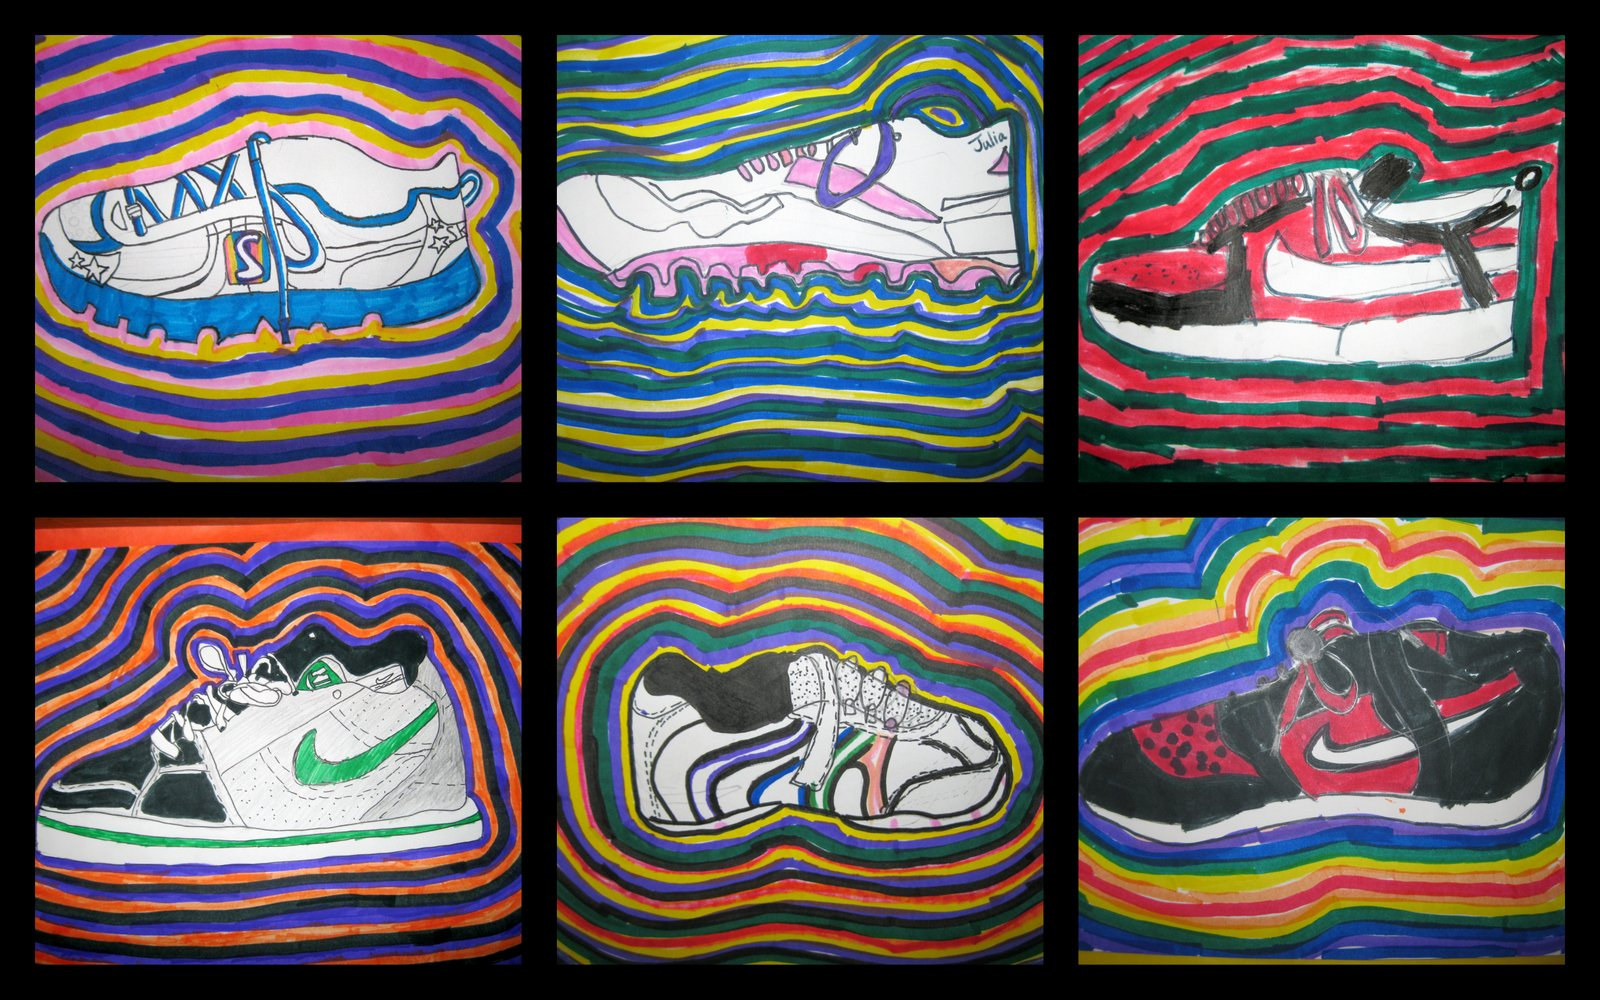 The Art Room 4th Grade Shoe Drawings